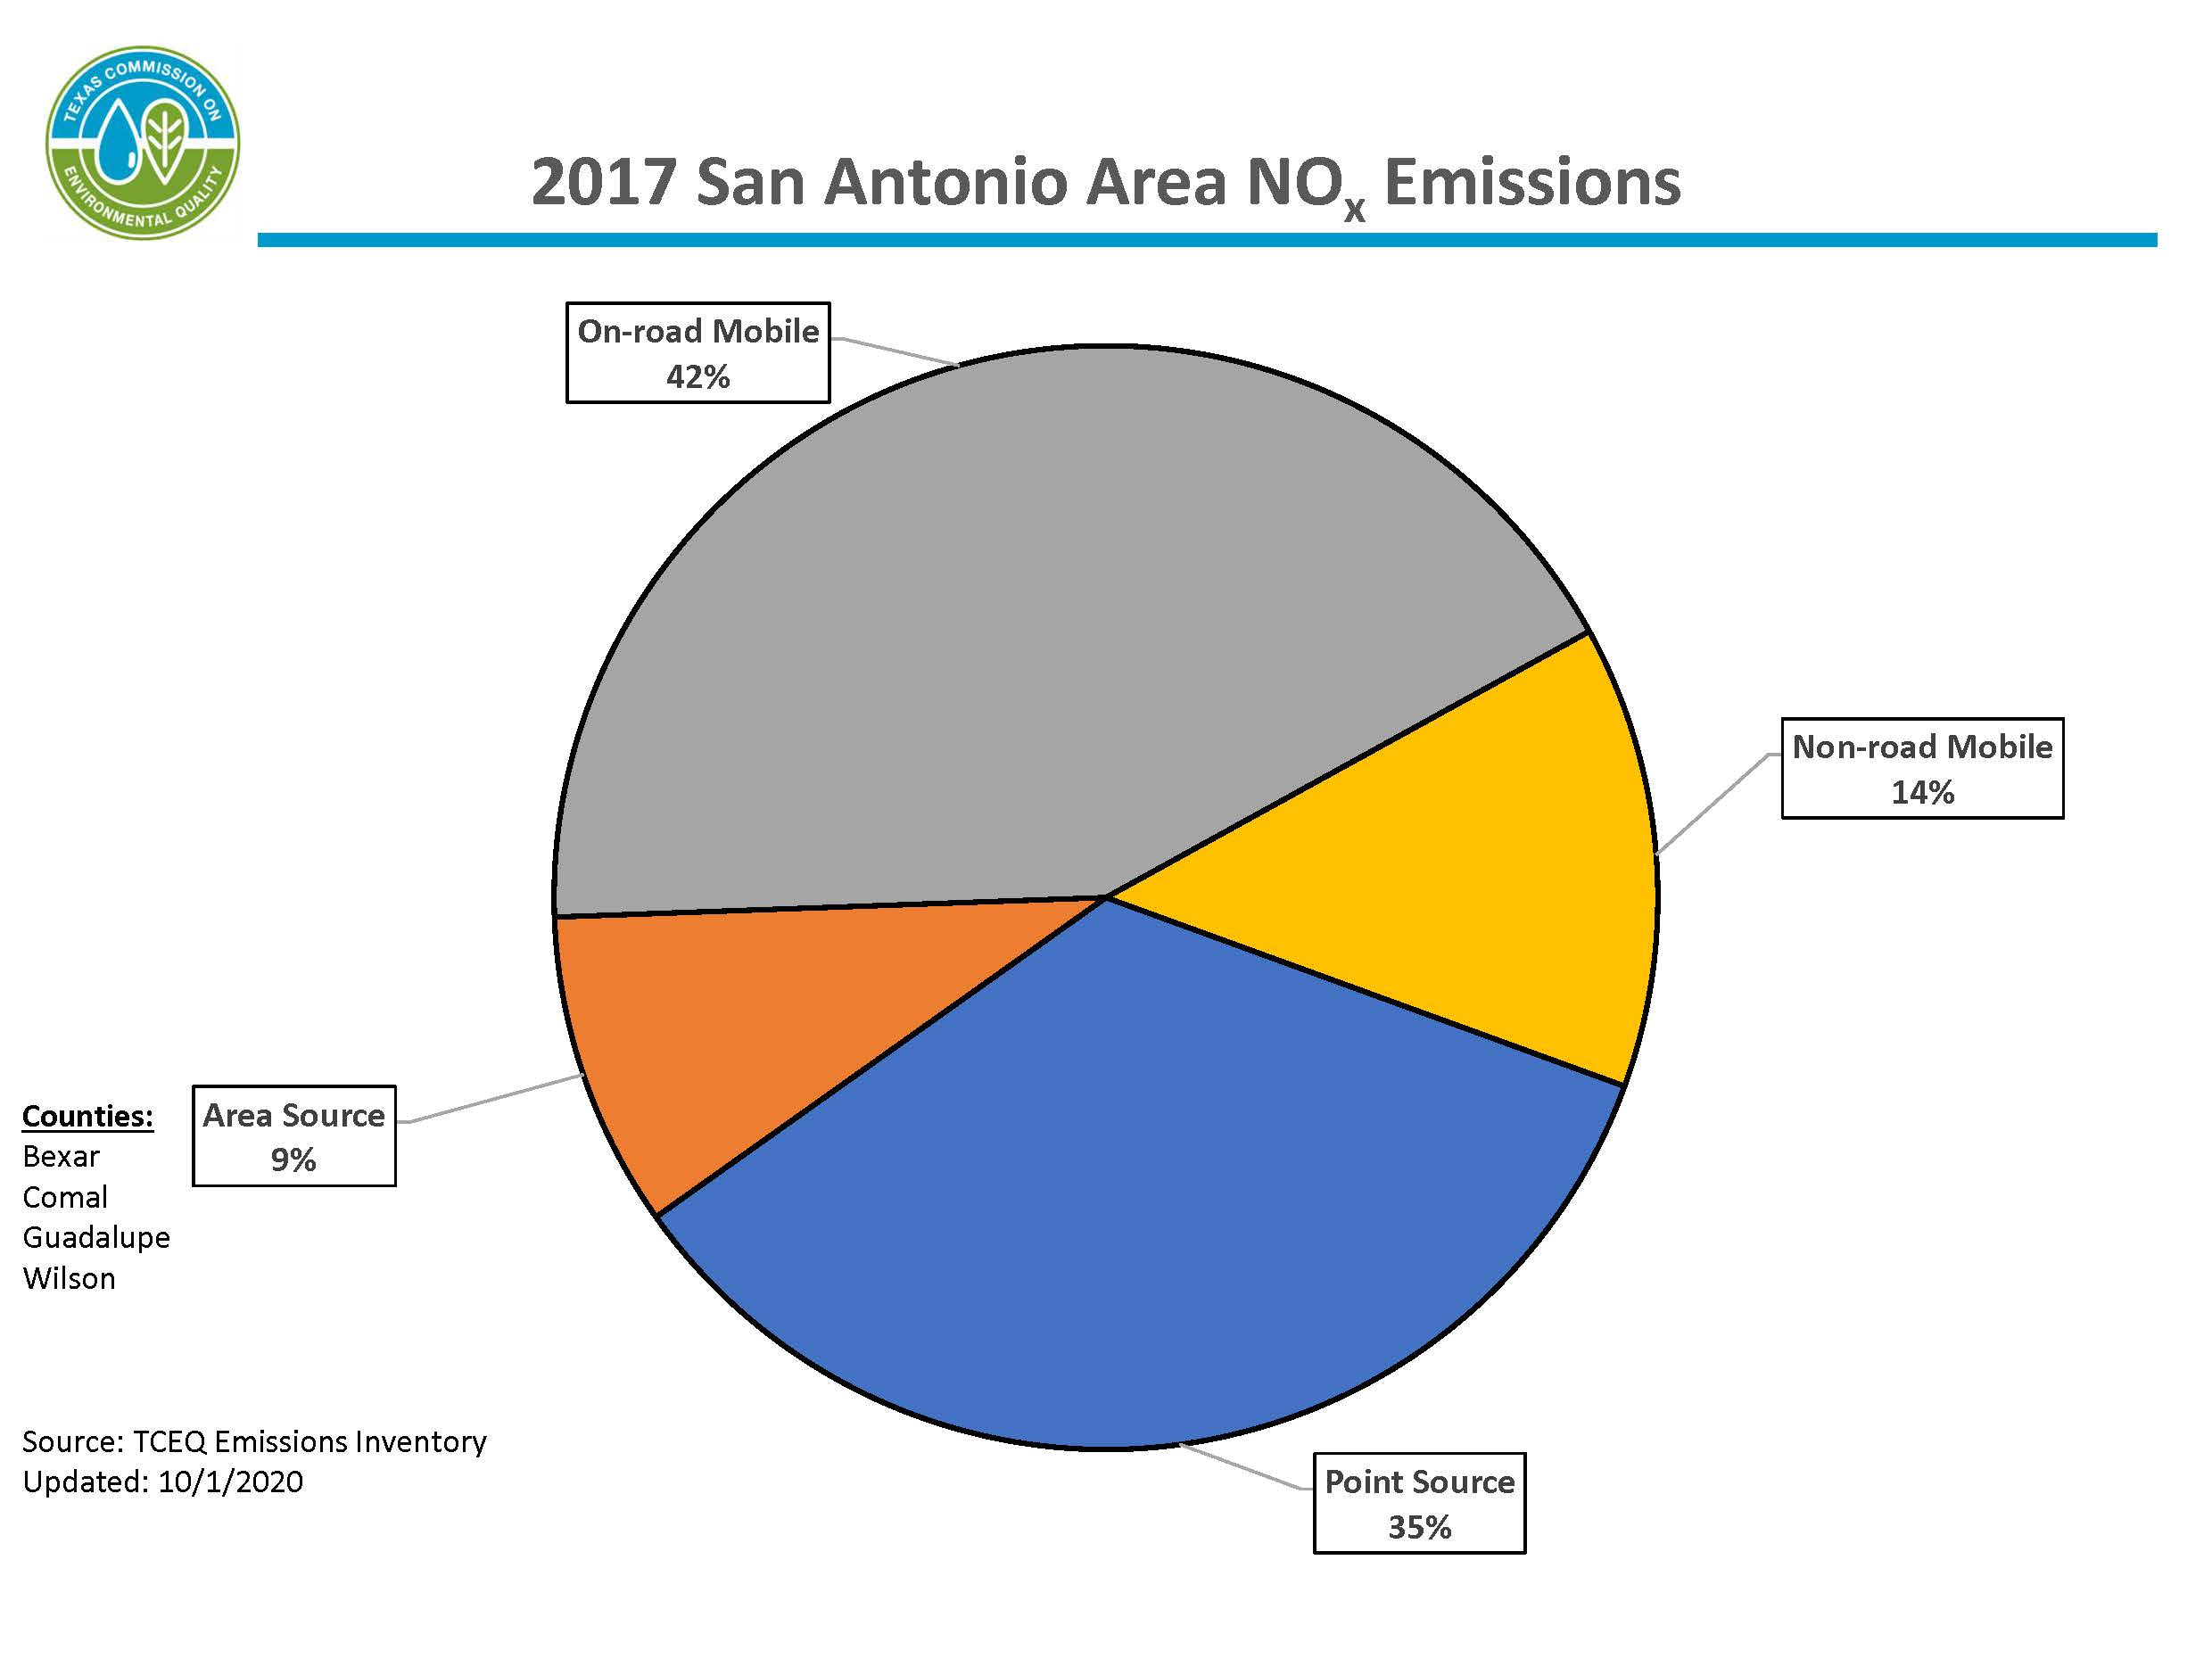 This chart represents calendar year 2017 nitrogen oxide emissions for the four-county San Antonio area. The San Antonio area includes Bexar, Comal, Guadalupe, and Wilson counties. 57 percent of emissions are from mobile sources, 34 percent of emissions are from point sources, and 9 percent of emissions are from area sources.